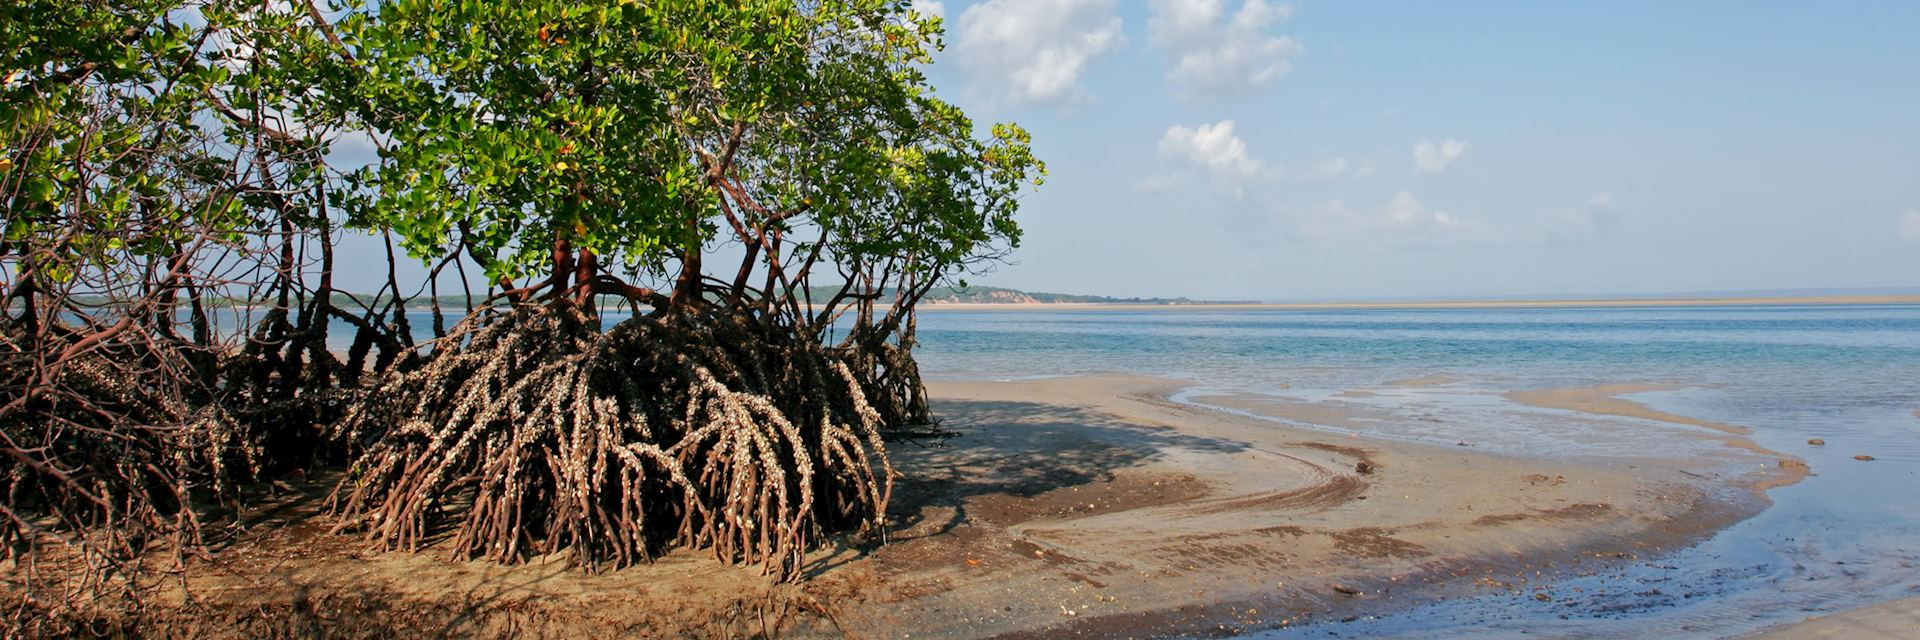 Mangrove trees, Mozambque beach